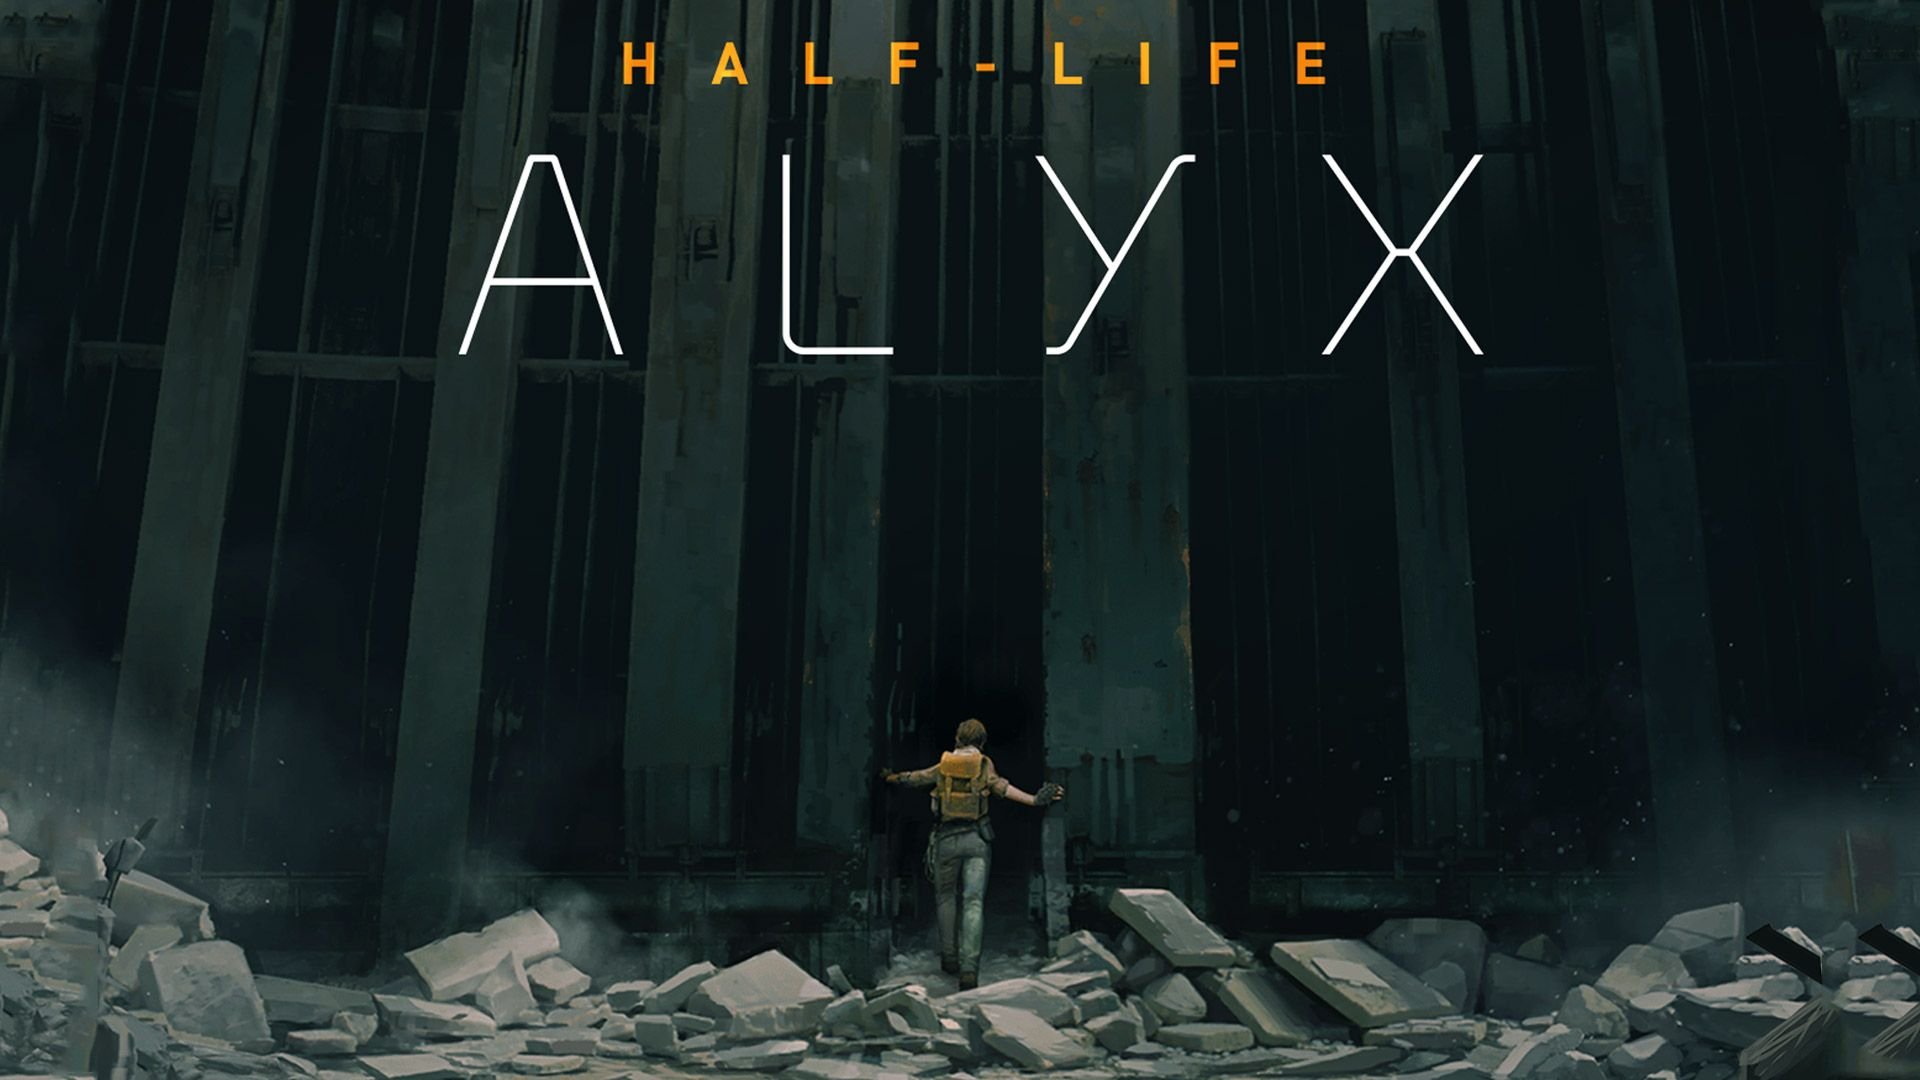 Half Life Alyx Wallpapers Top Free Half Life Alyx Backgrounds Wallpaperaccess